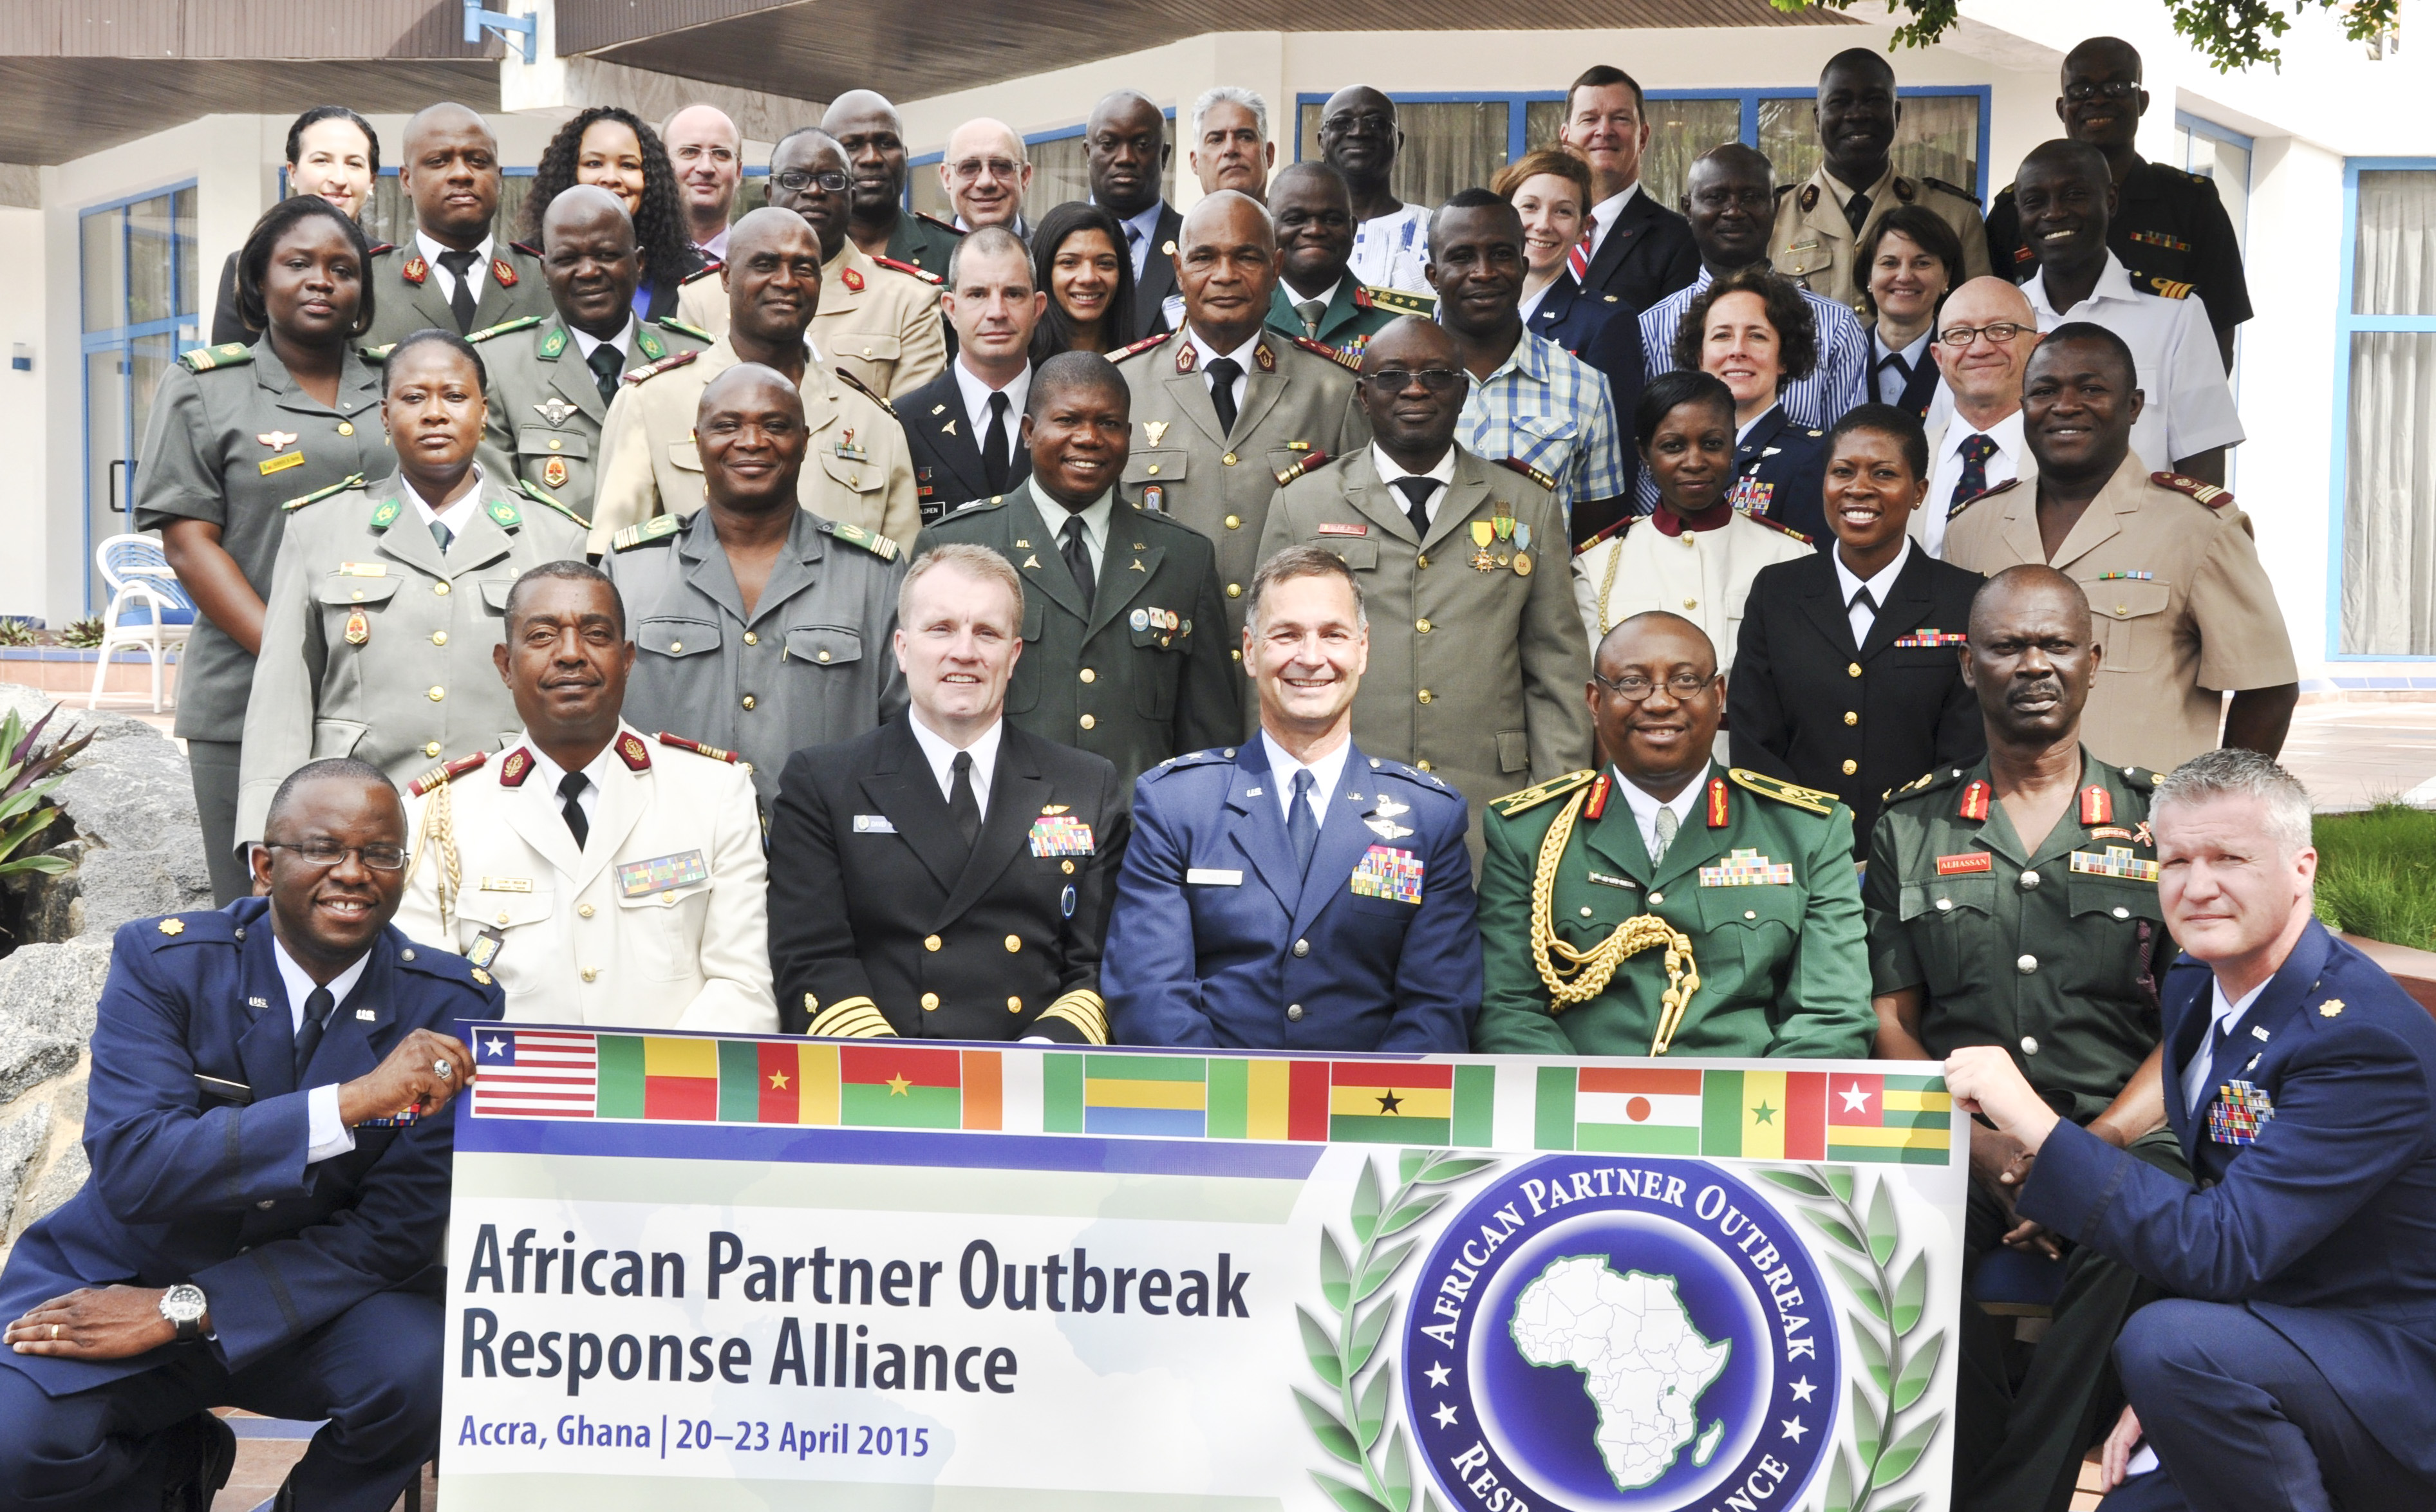 Participants of the first African Partner Outbreak Response Alliance meeting pose for a photo in Accra, Ghana, April 20, 2015.  More than 60 military and civilian doctors and medical practitioners from 12 African nations attended the meeting to discuss the capabilities of African partner nations to respond to a disease outbreak. (U.S. Africa Command photo by Tech. Sgt. Olufemi A Owolabi)